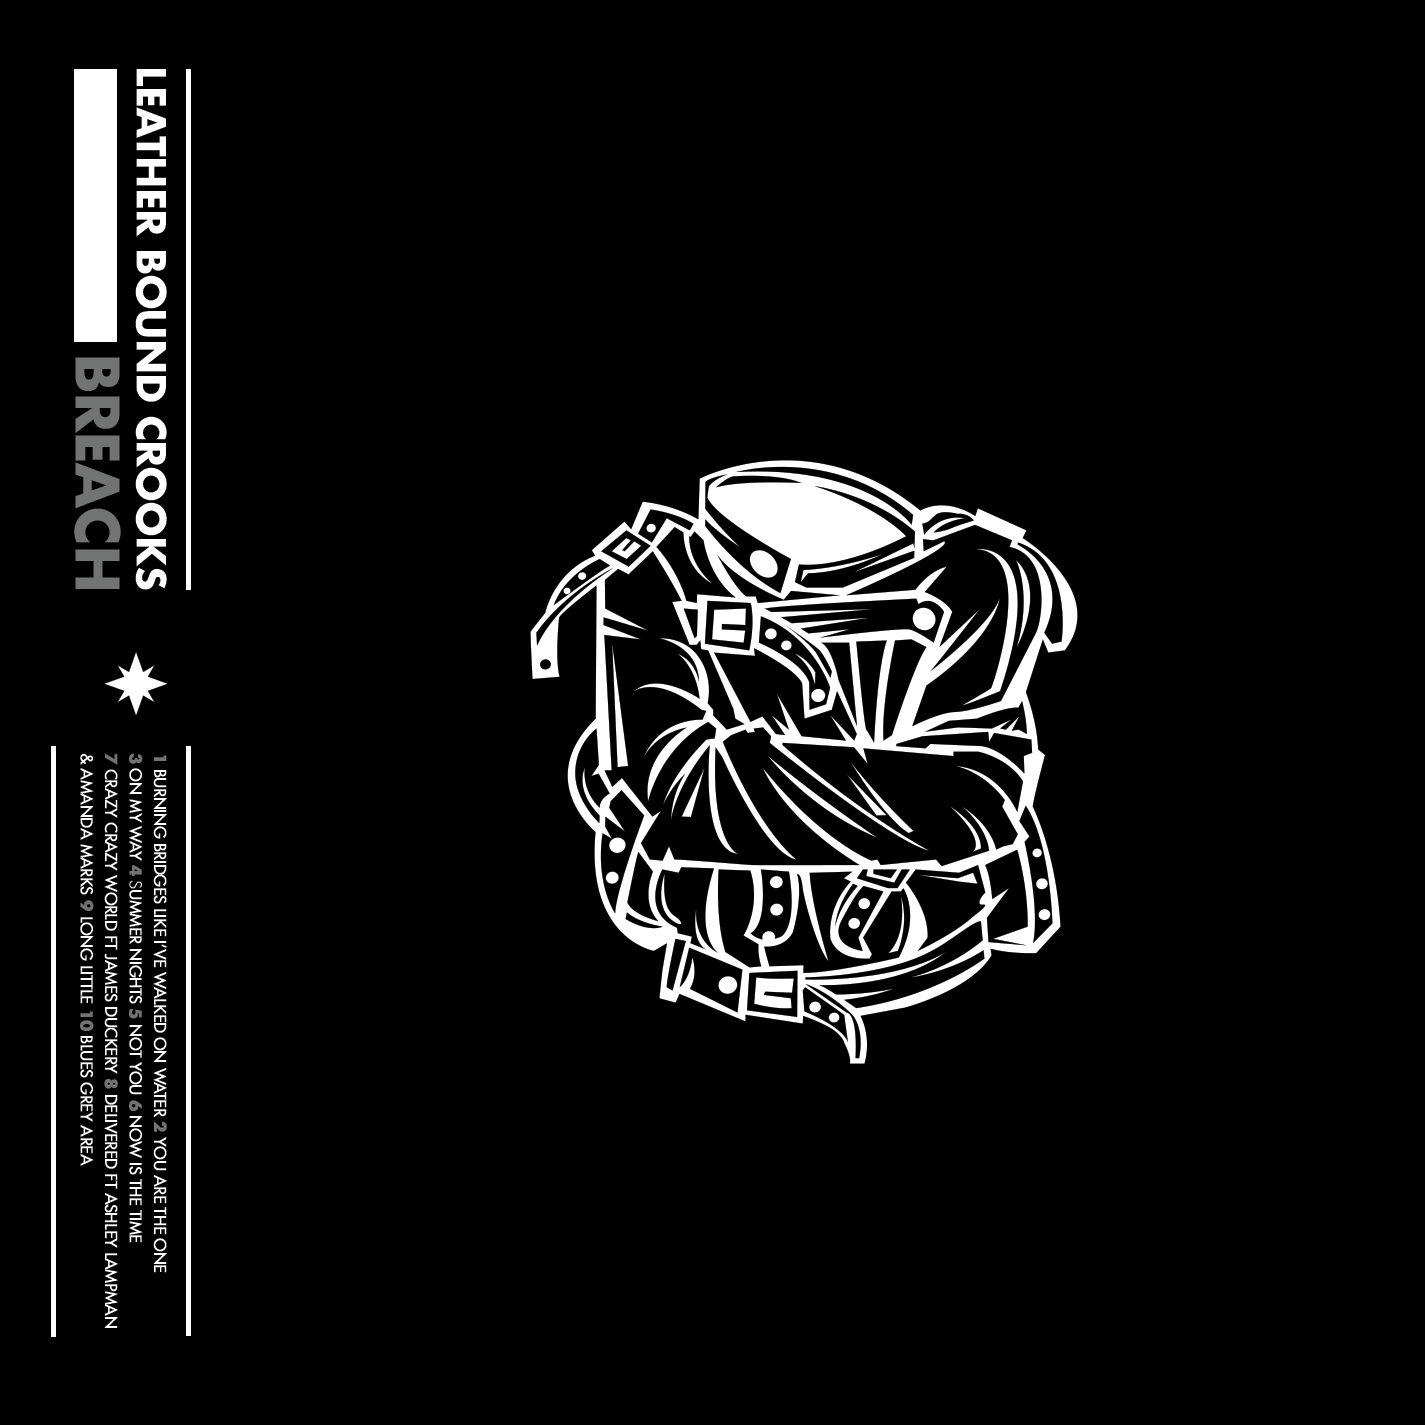 New LP Breach - Now Streaming!